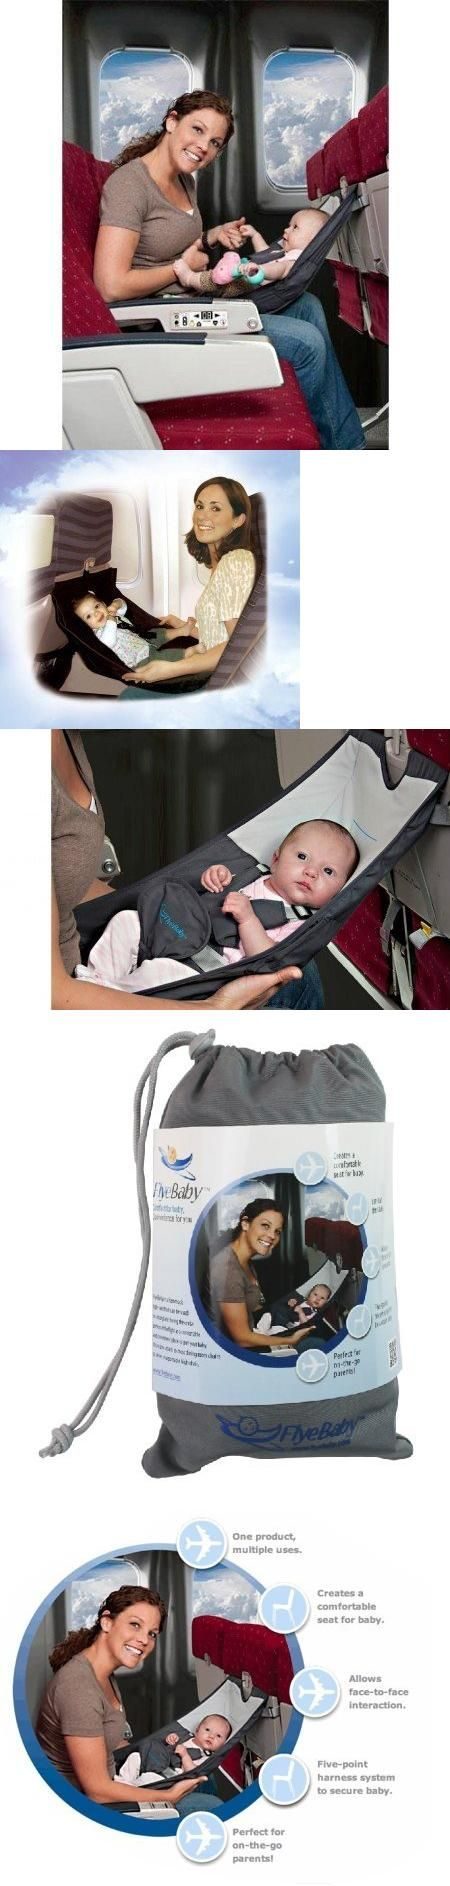 Infant Airplane Seat - Flyebaby Airplane Baby Comfort System - Air Travel with Baby Made Easy @weespring